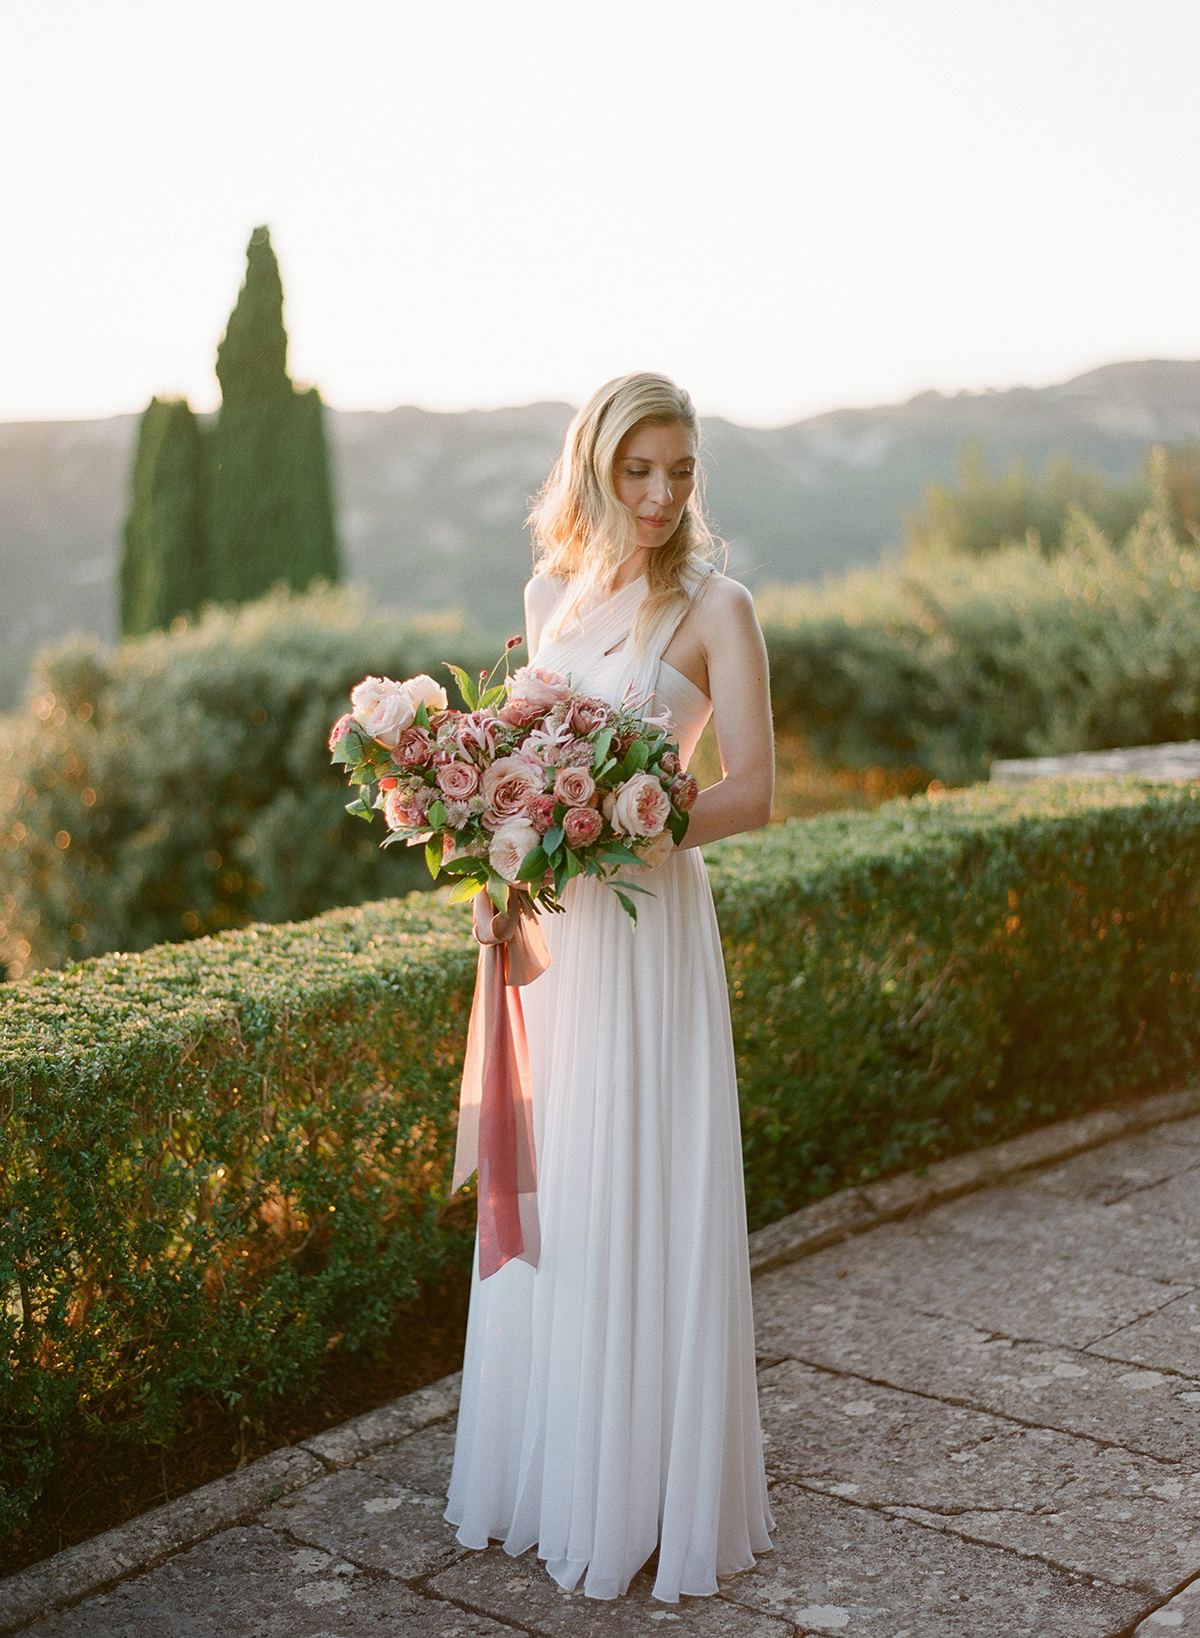 Bustle 101: Everything You Need to Know About Wedding Dress Bustles